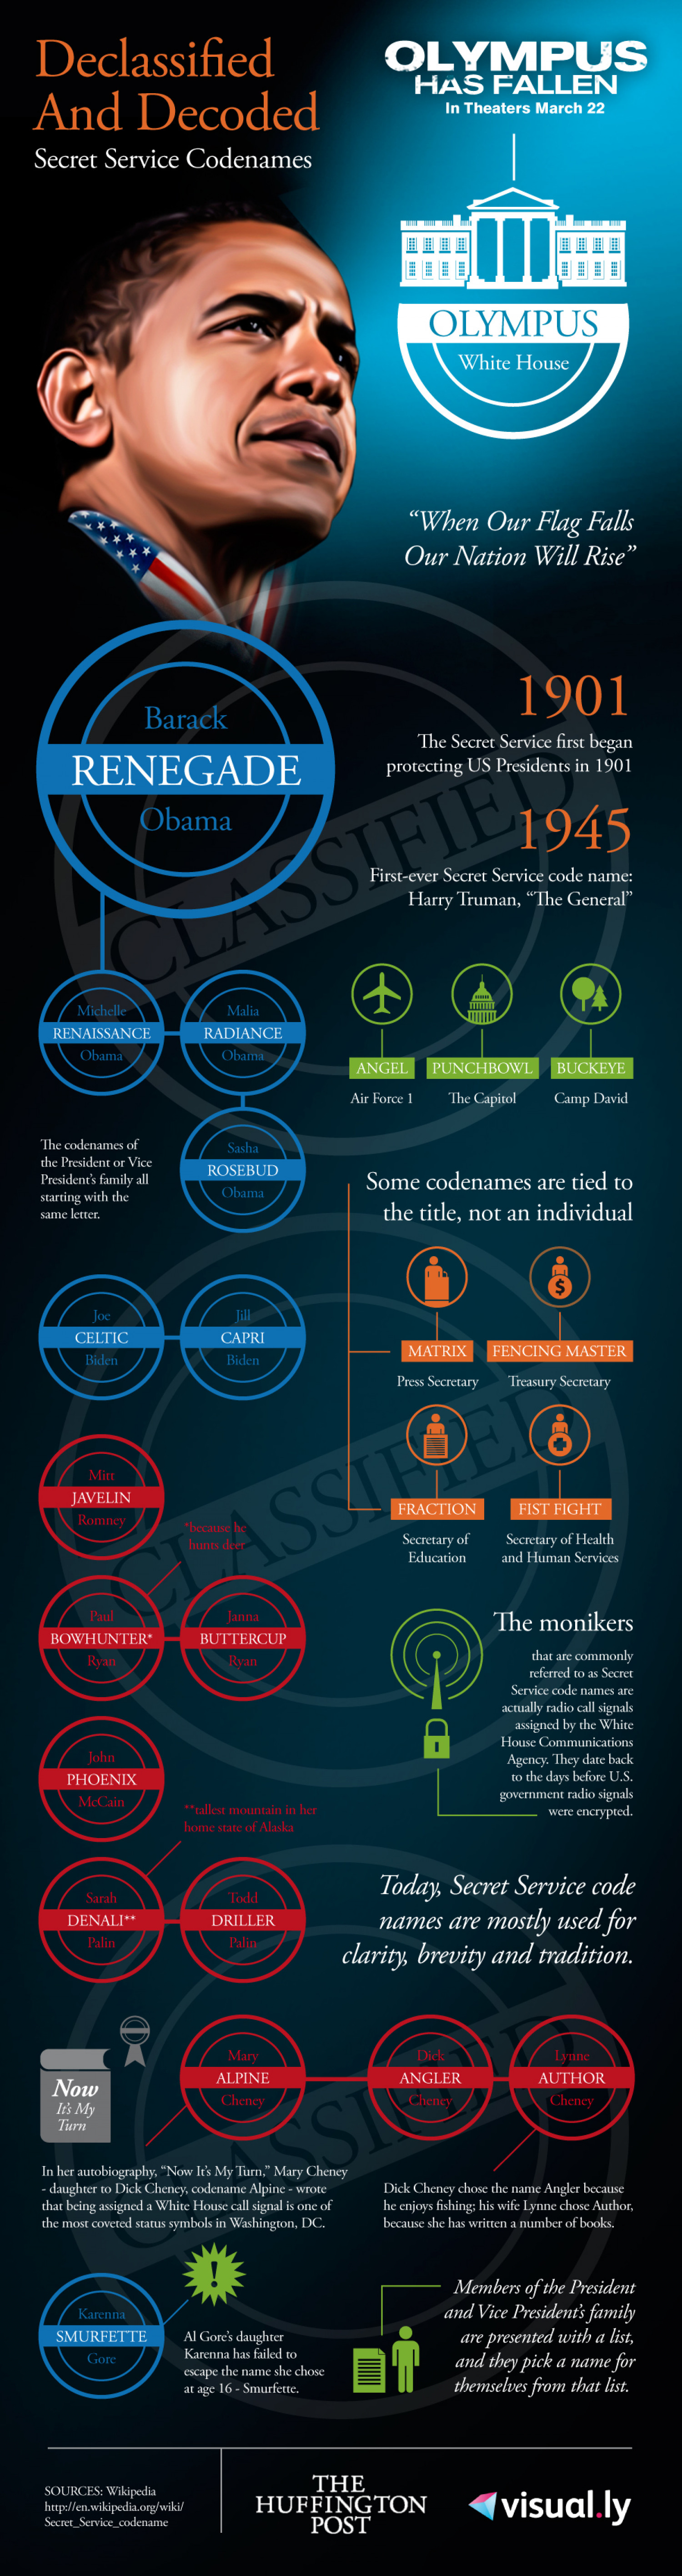 Declassified and Decoded: Secret Service Codenames Infographic